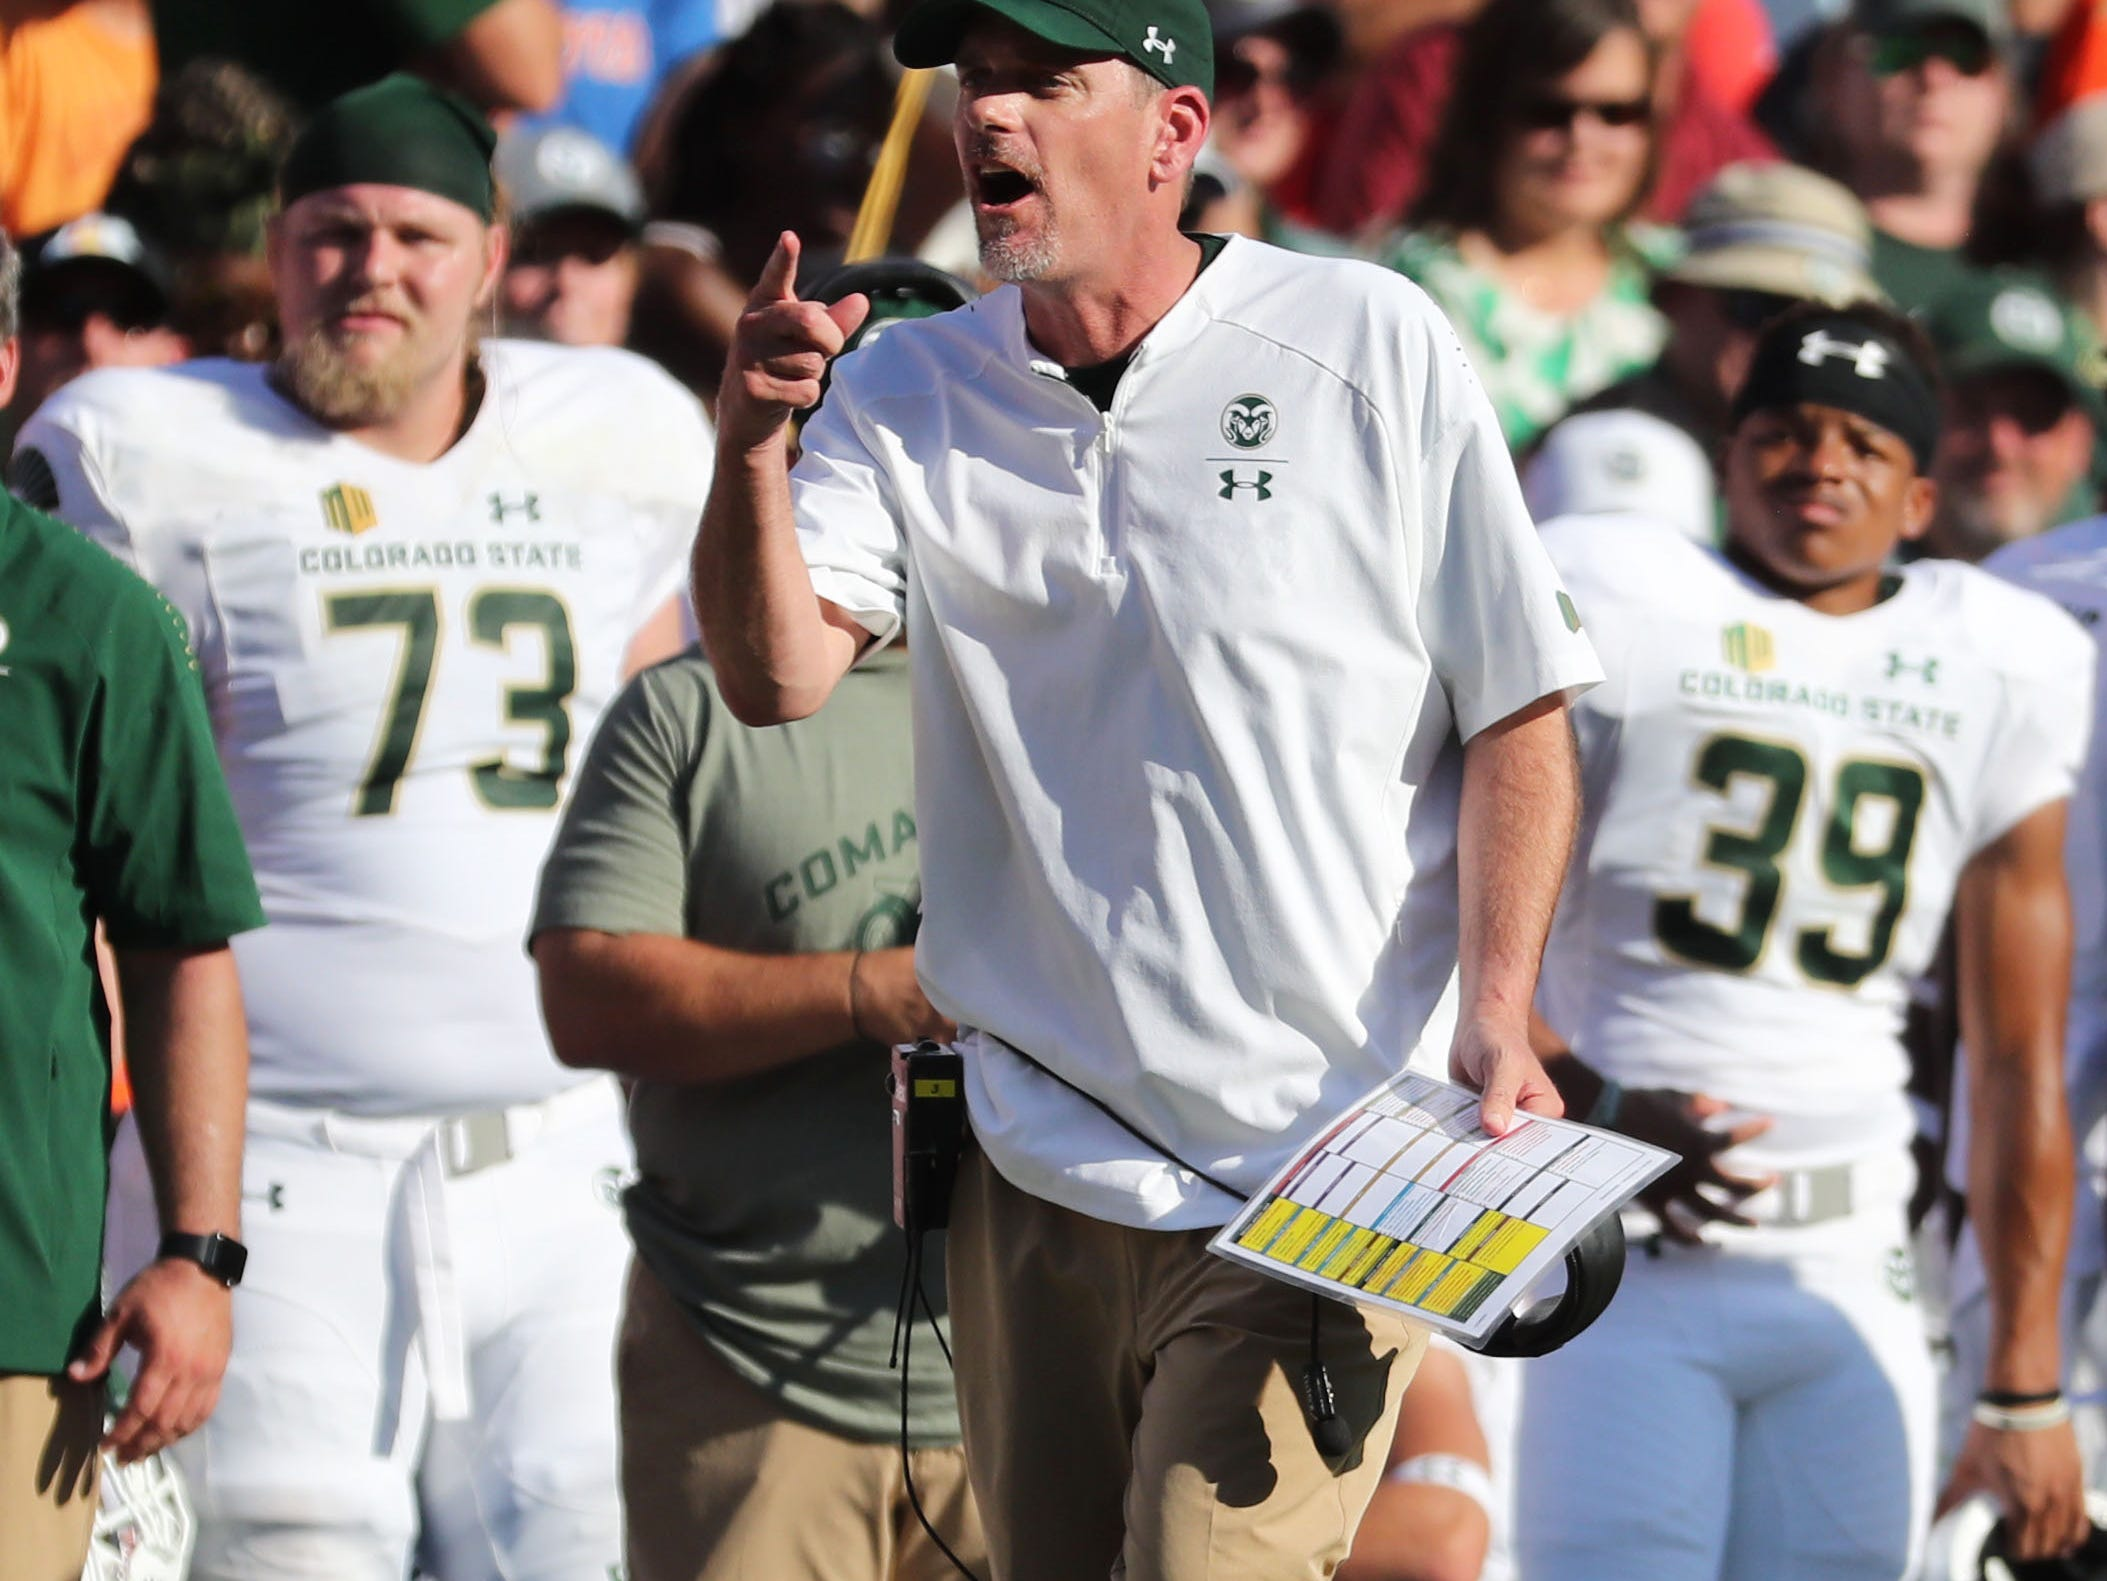 Sep 15, 2018; Gainesville, FL, USA; Colorado State Rams head coach Mike Bobo reacts against the Florida Gators during the second quarter at Ben Hill Griffin Stadium. Mandatory Credit: Kim Klement-USA TODAY Sports